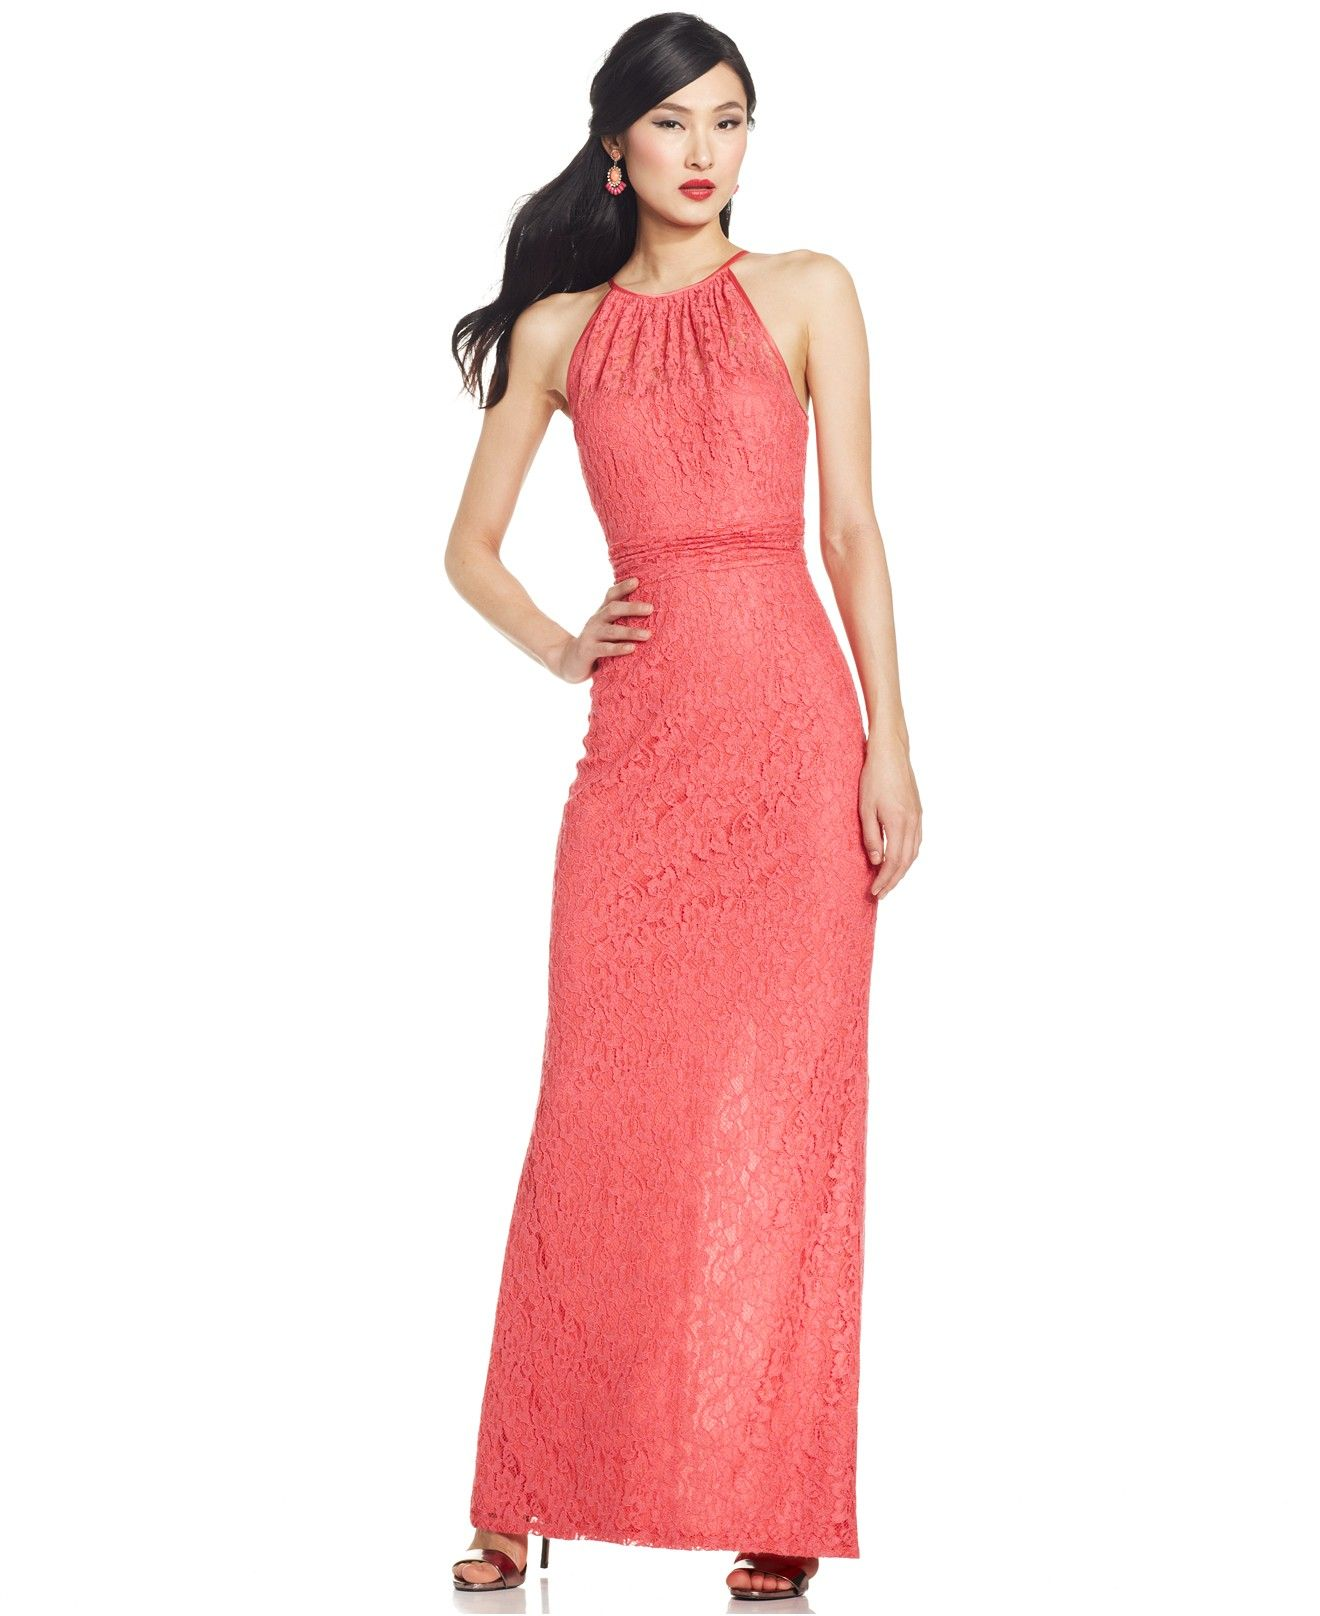 Adrianna papell illusion lace halter gown bridesmaids women adrianna papell illusion lace halter gown bridesmaids women macys goes to size ombrellifo Images